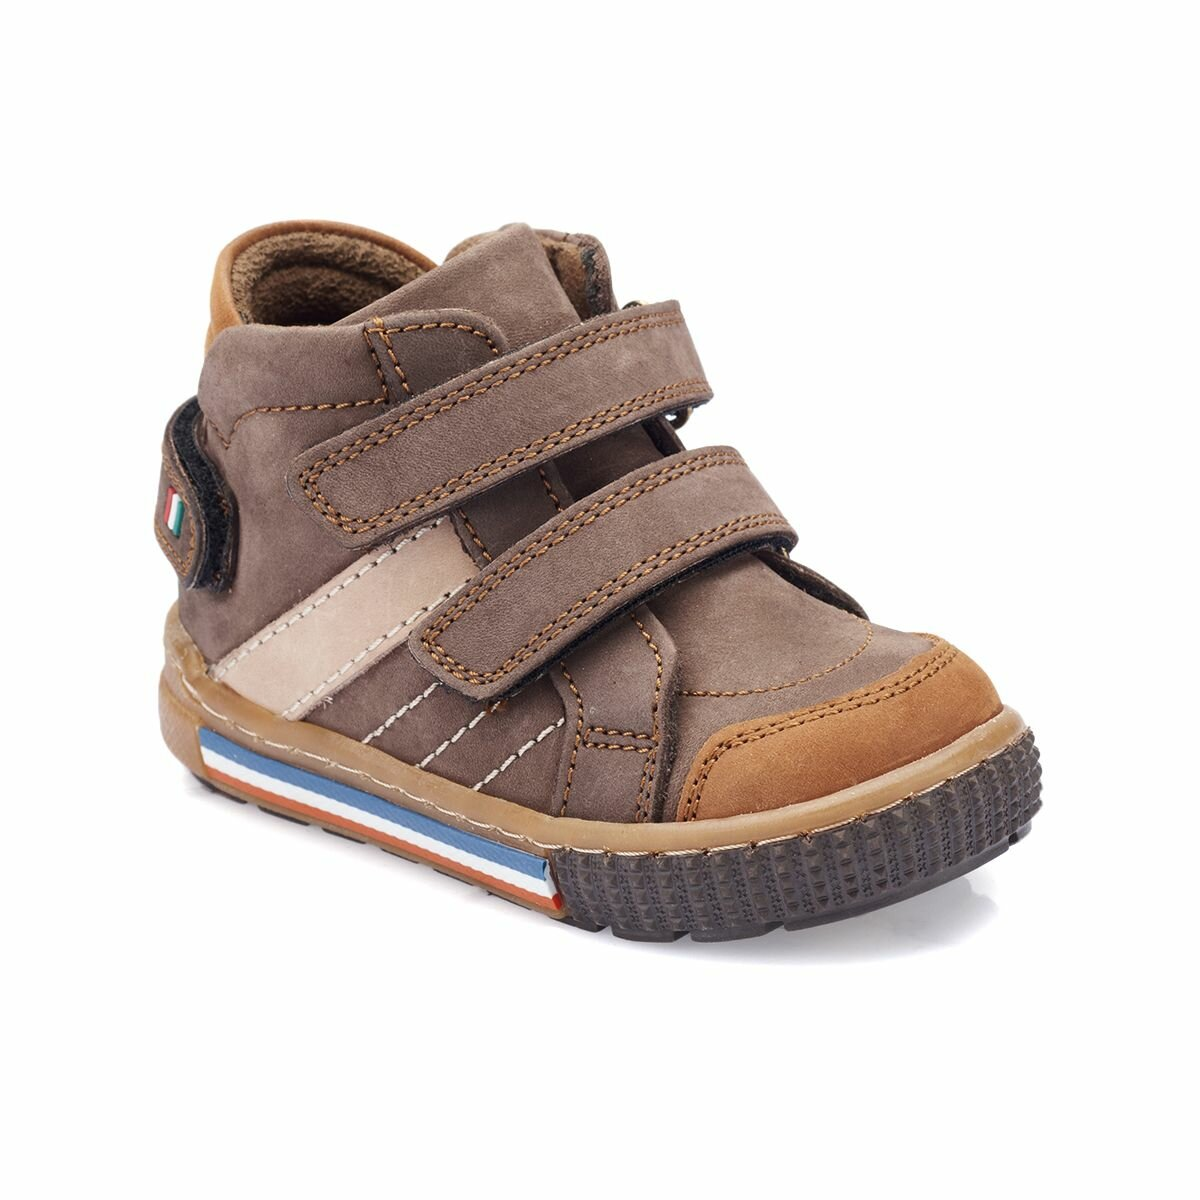 FLO 82.509581.B Brown Male Child Boots Polaris